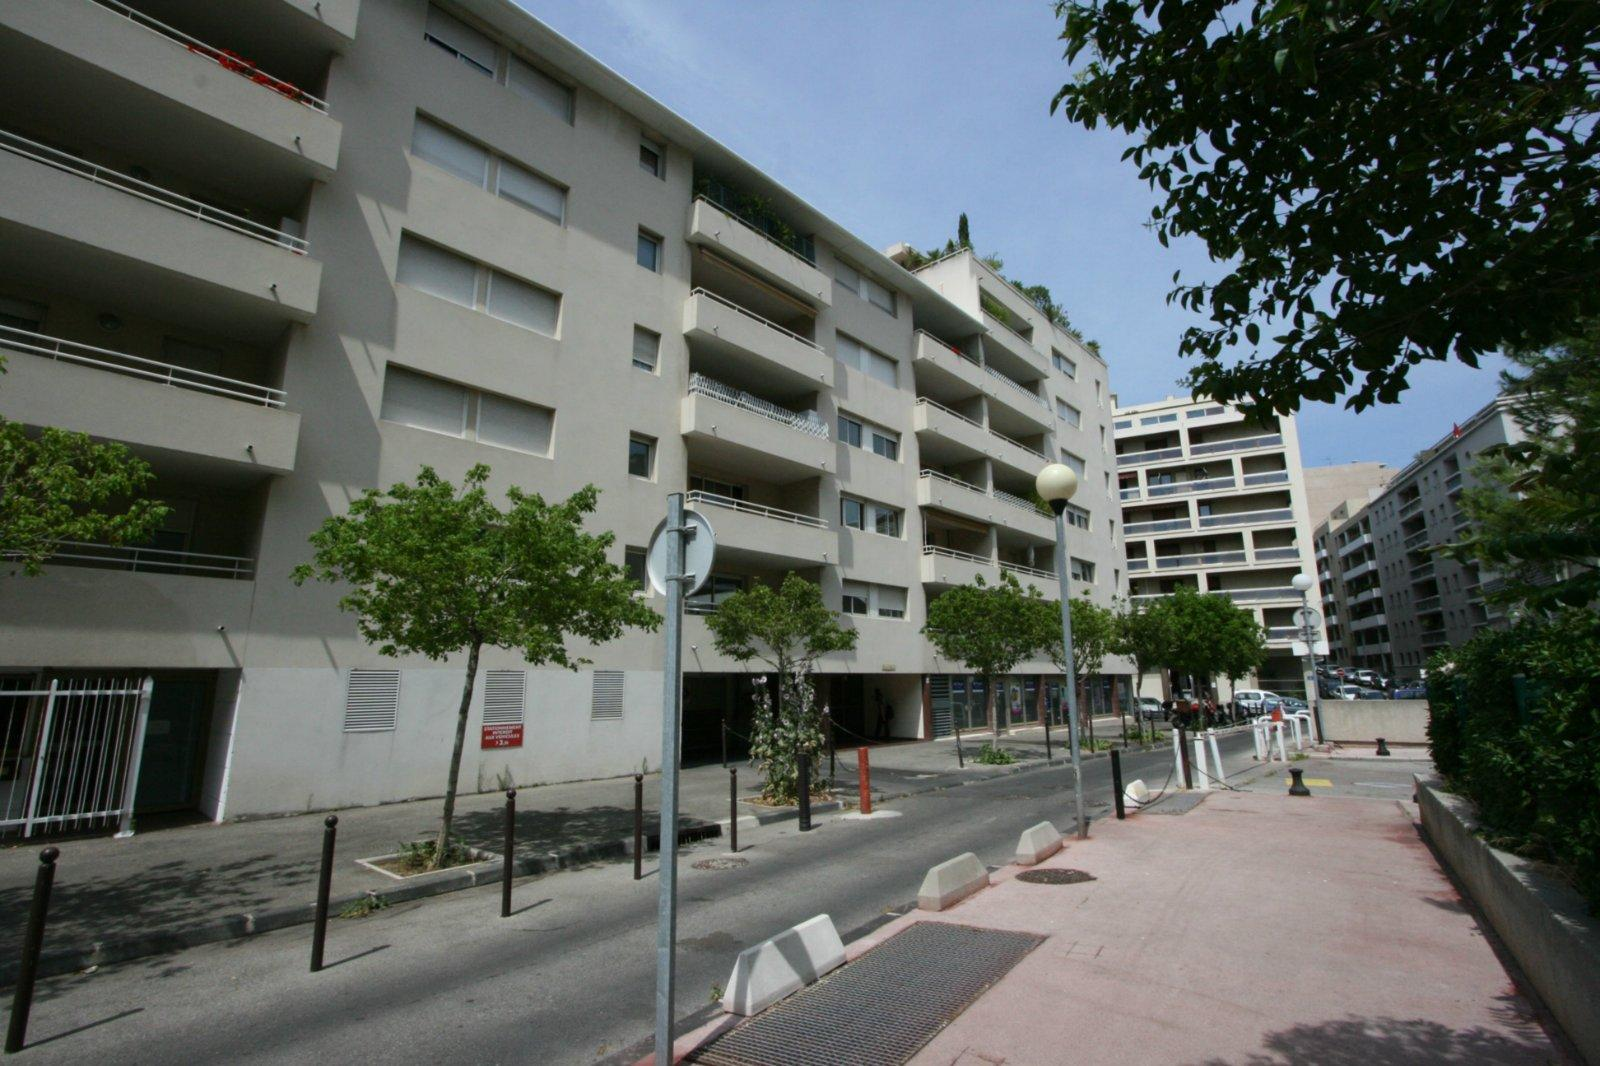 Location marseille 13008 rouet turcat mery place de for Garage renault marseille 13008